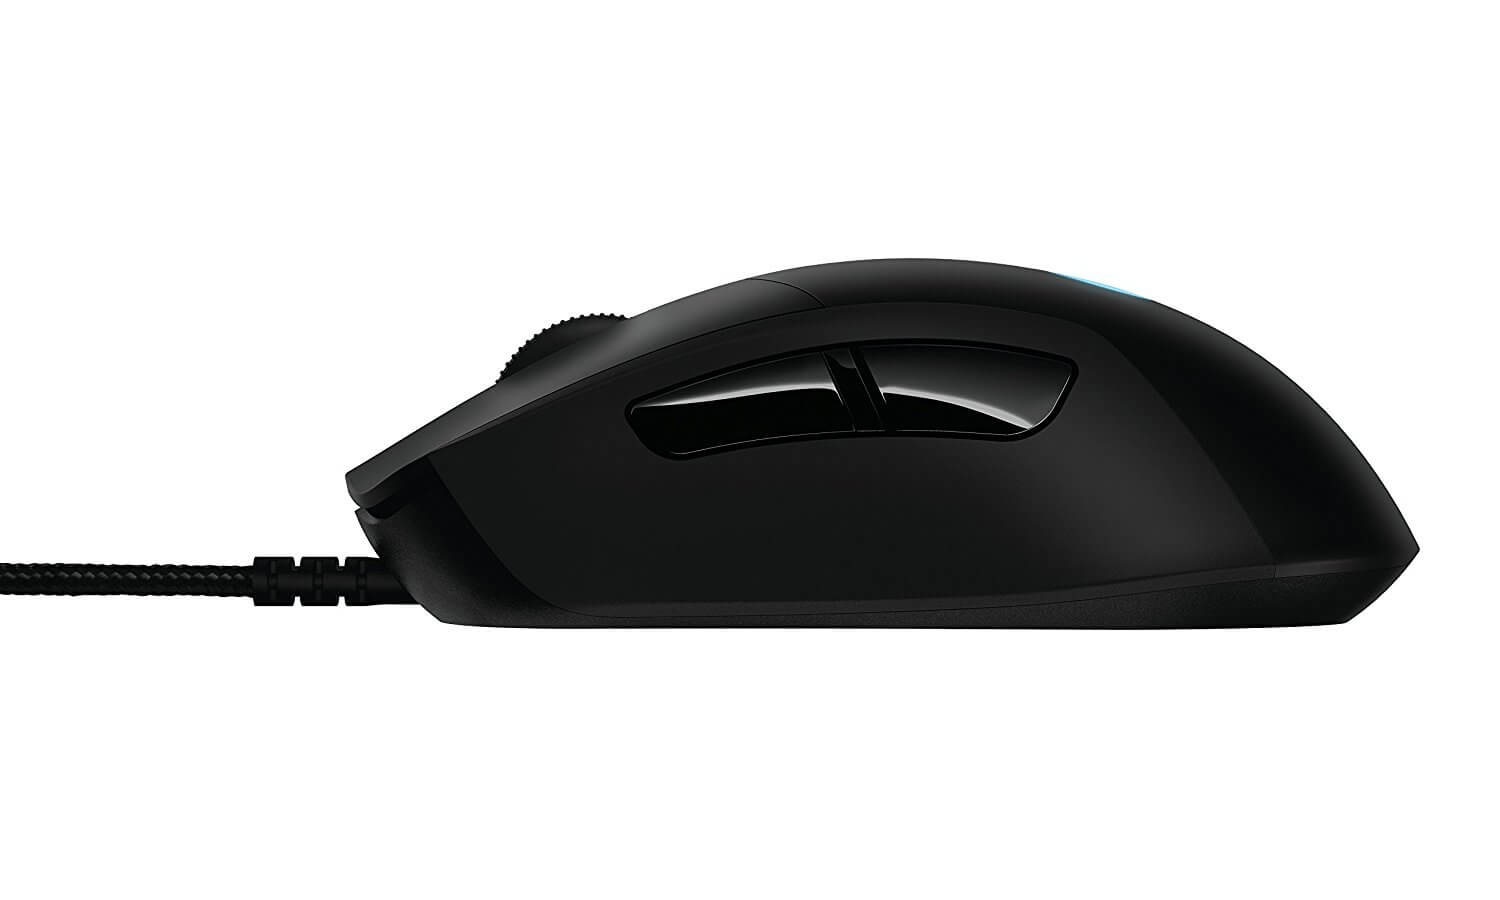 Side view of Logitech G403